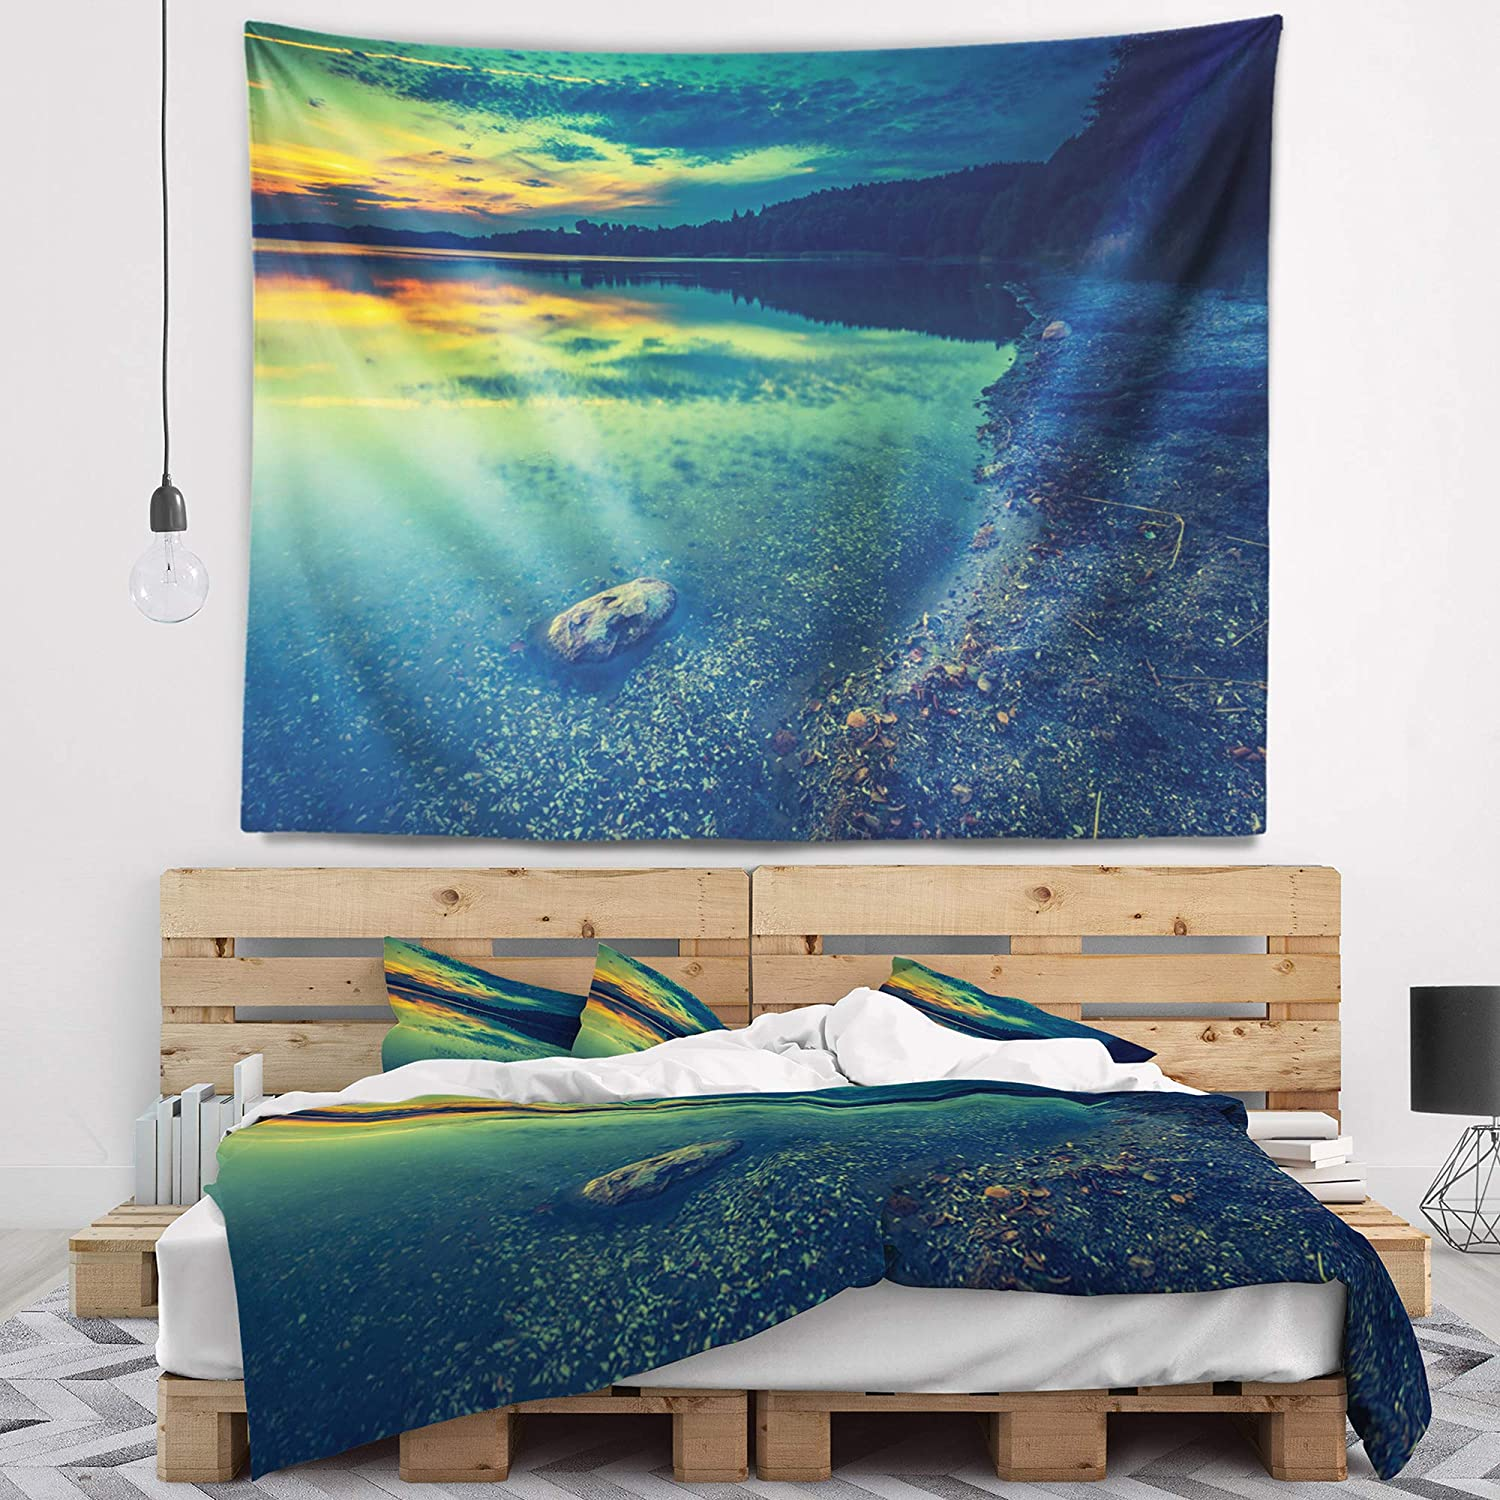 Designart TAP15729-60-50  Dark Vintage Lake at Sunset Boat Blanket D/écor Art for Home and Office Wall Tapestry Large 60 in Created On Lightweight Polyester Fabric x 50 in